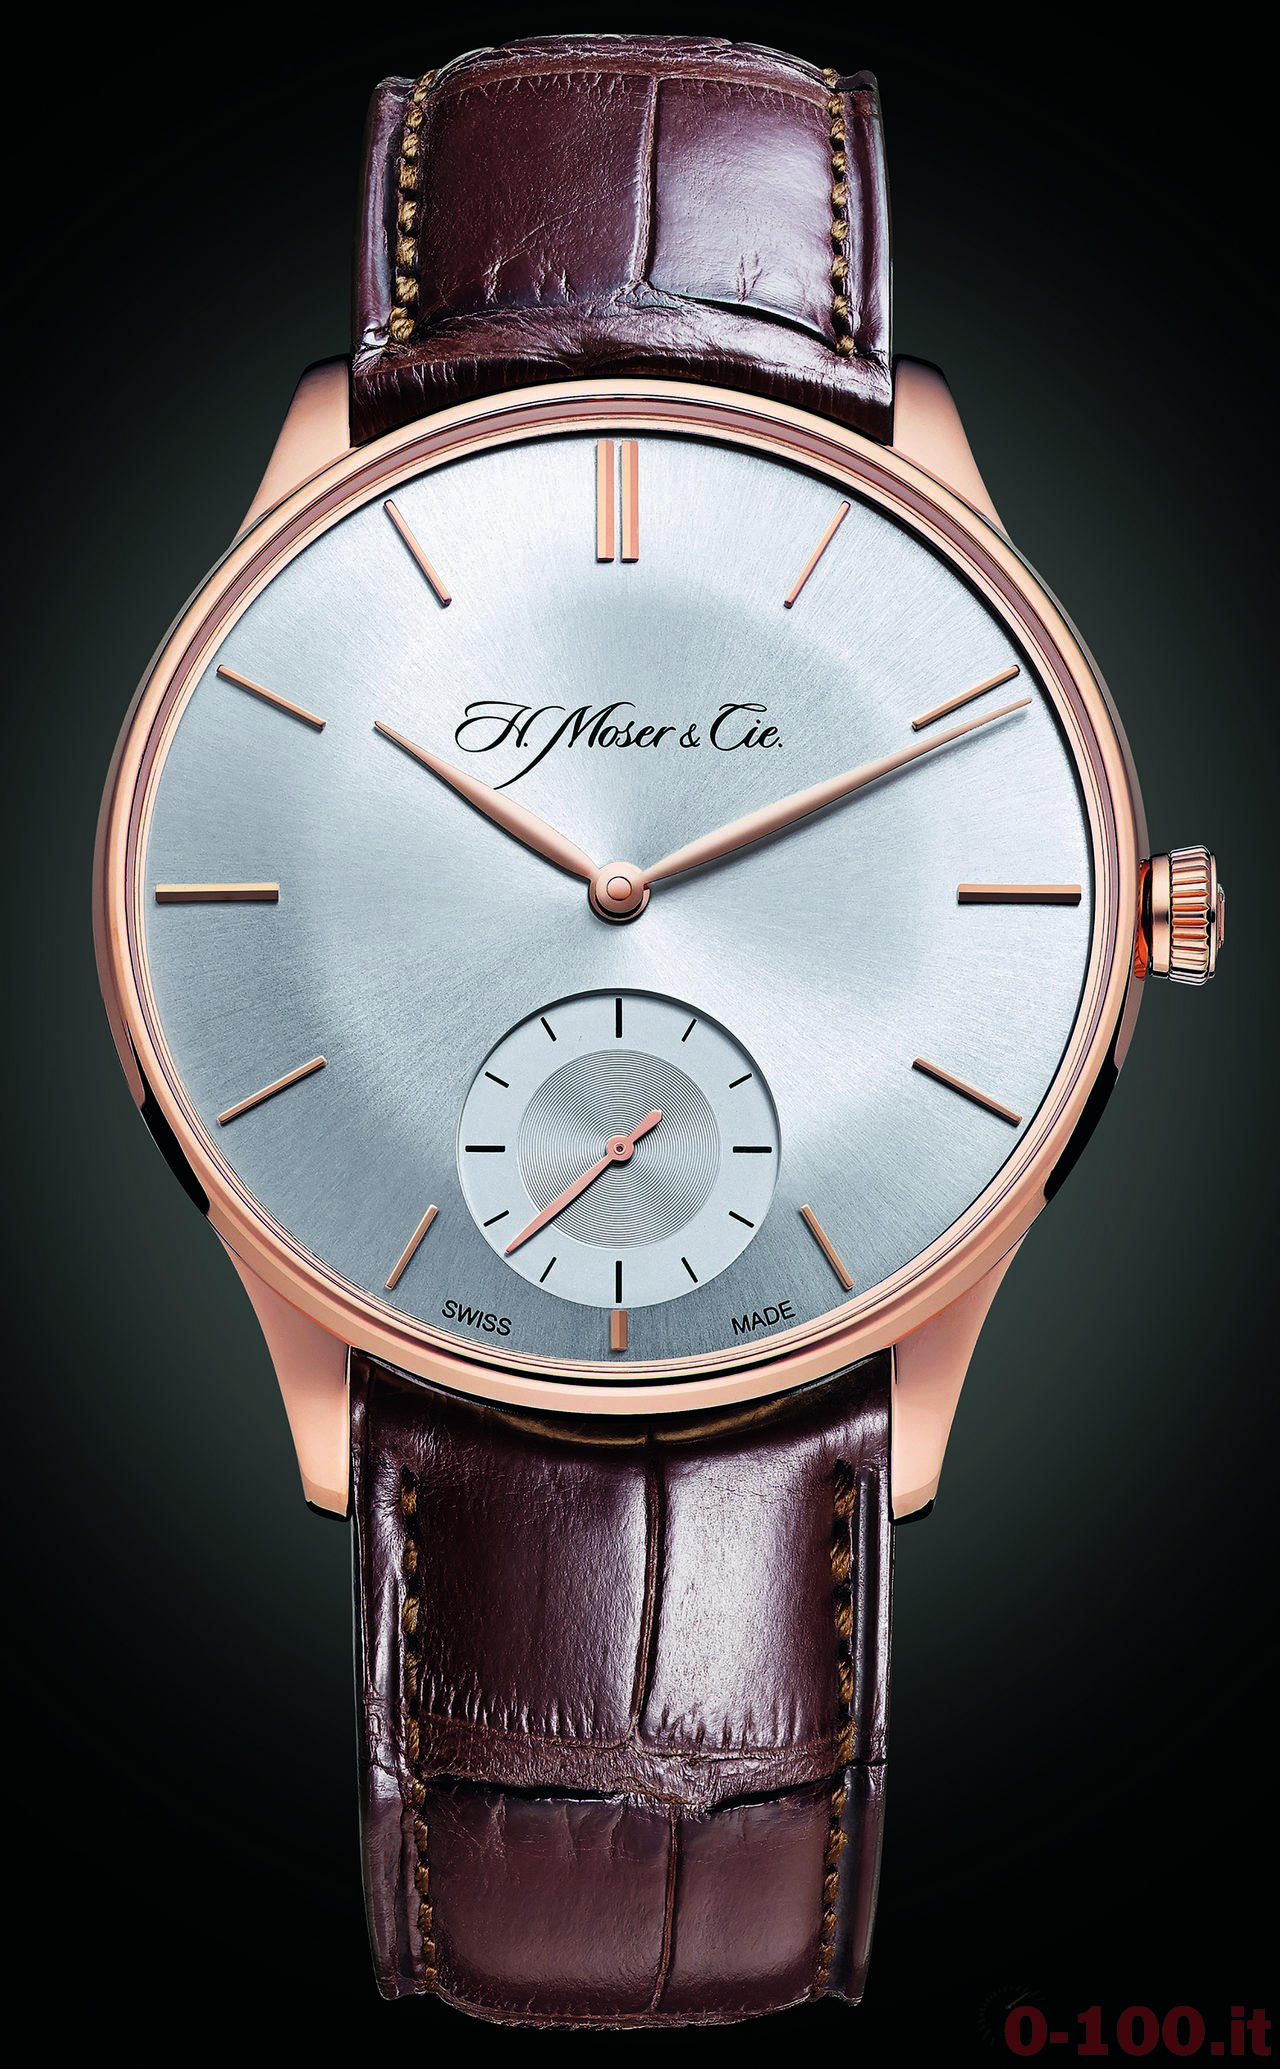 Baselworld-2014-H. Moser & Cie Venturer Small Seconds _0-10014